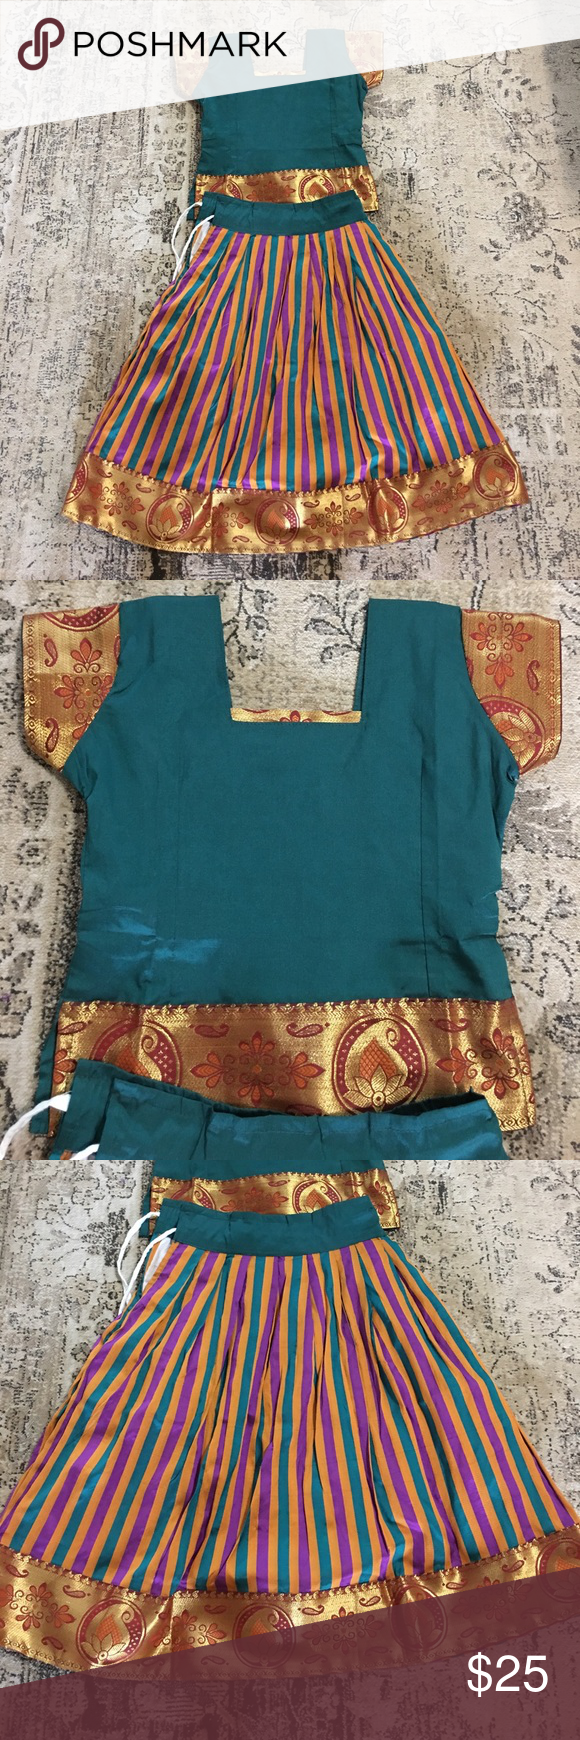 NWOT Boho chic outfit for lil princess Gorgeous outfit for your lil princess. My kids never wore it. Just good as brand new. Purchased from India. Fits for 2T to 3T Dresses Casual